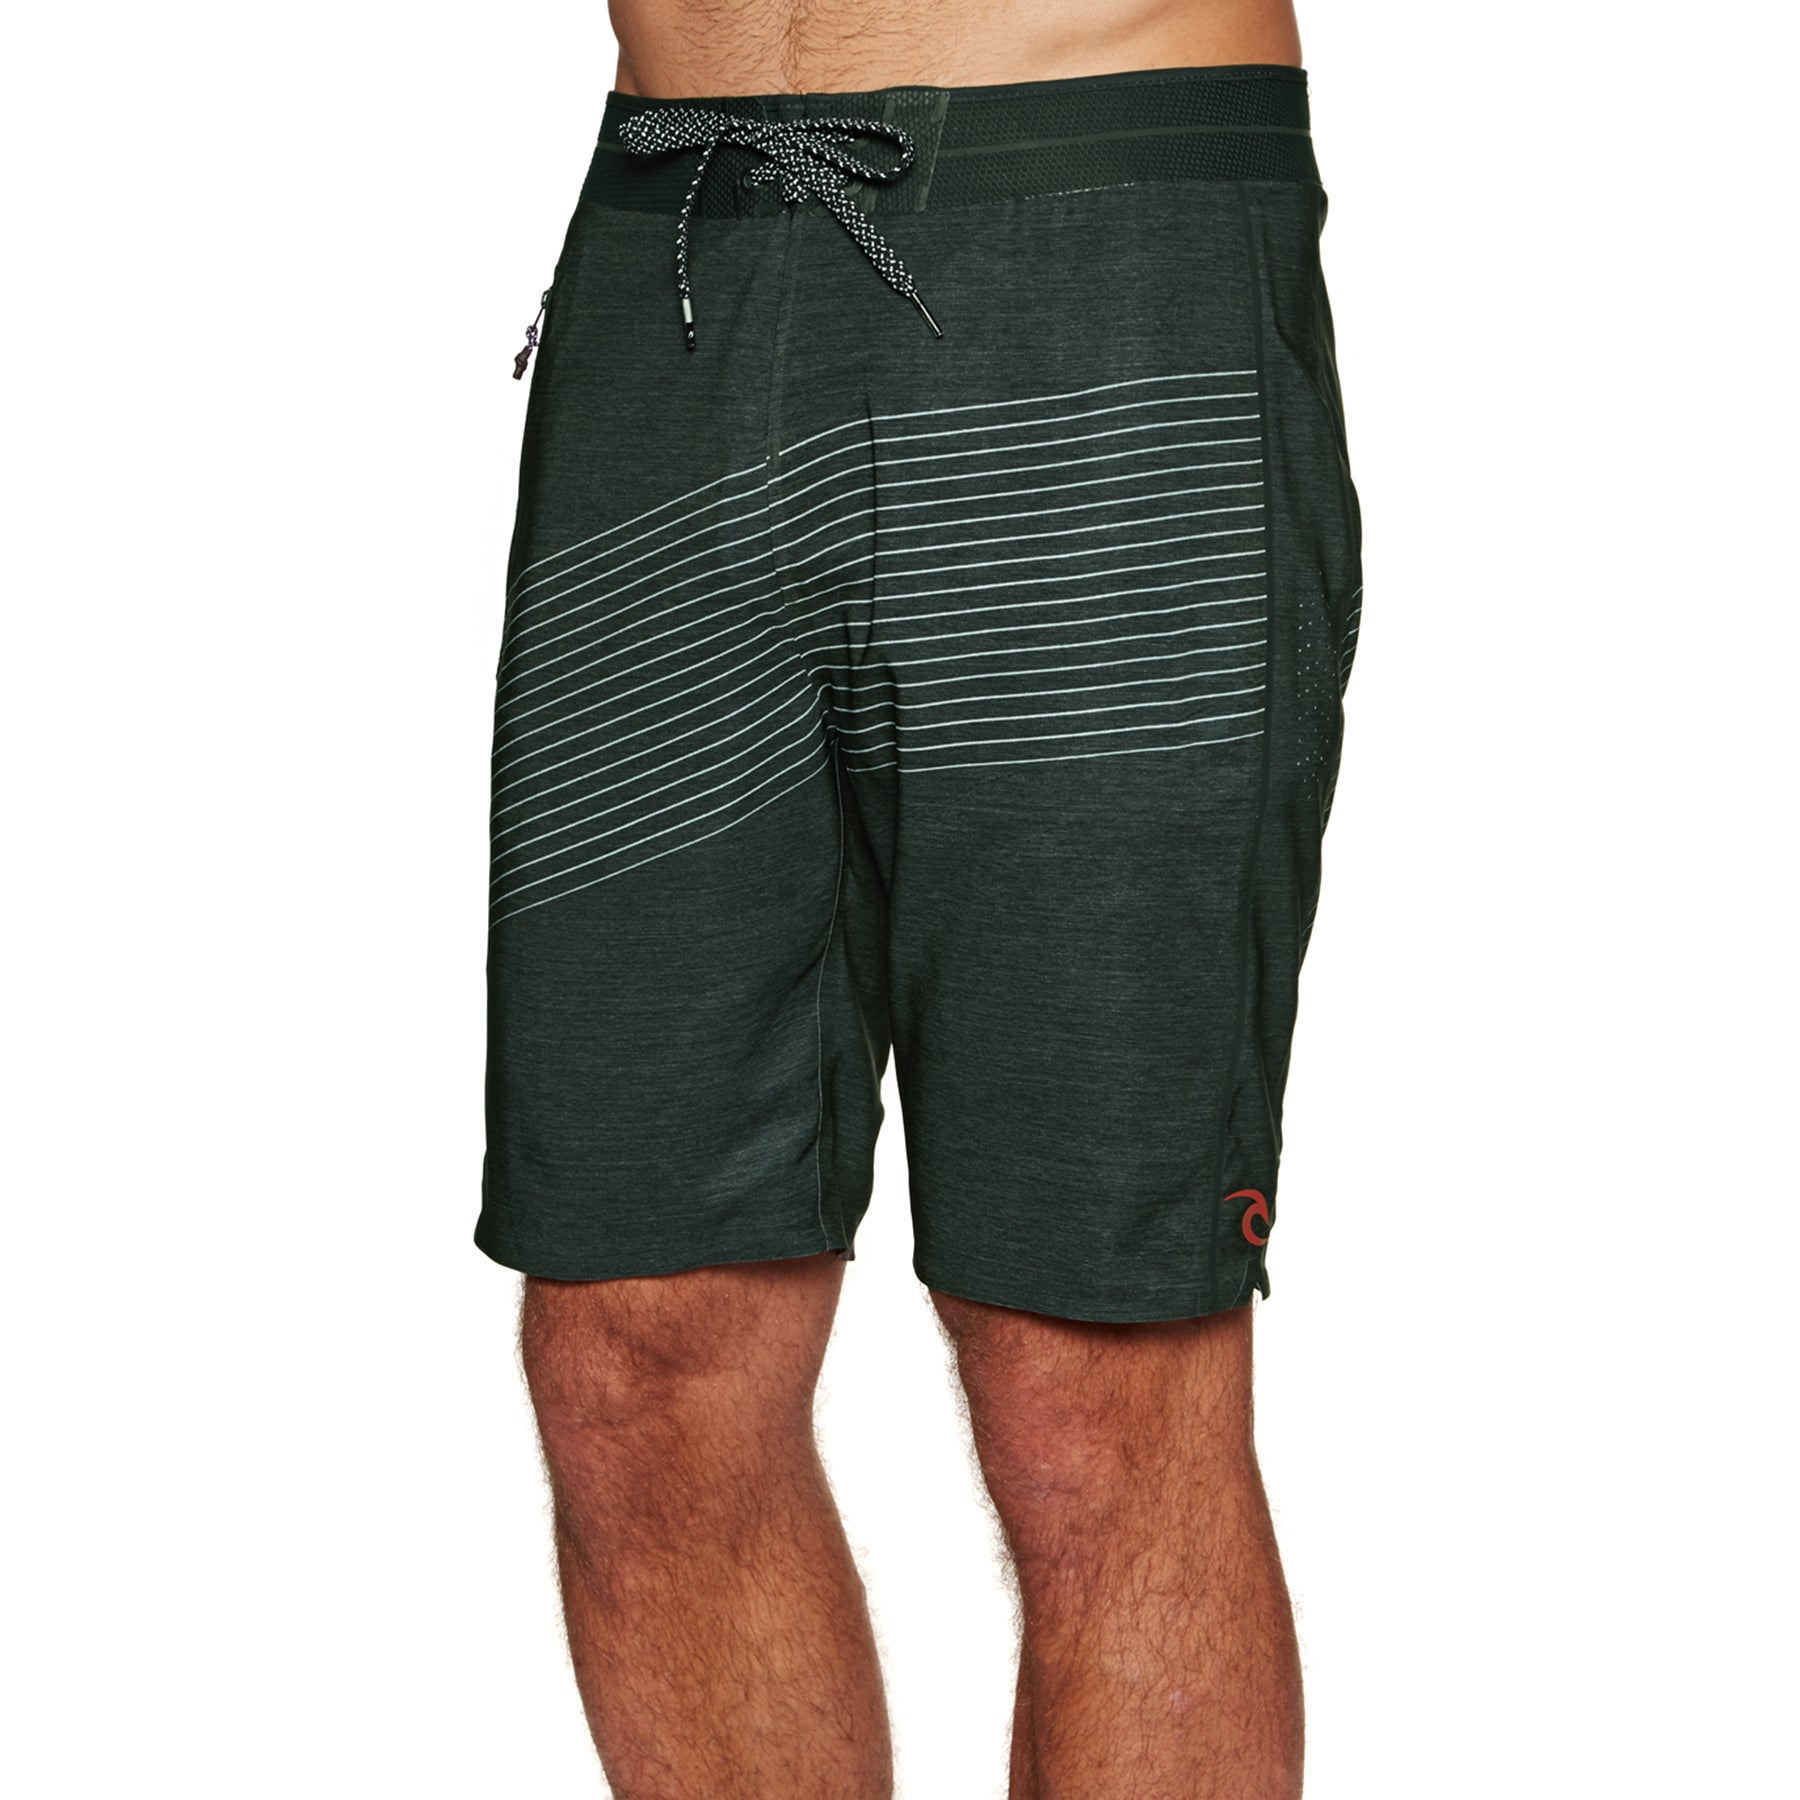 Boardshort Rip Curl Mirage Fanning Invert Ultimate - Black